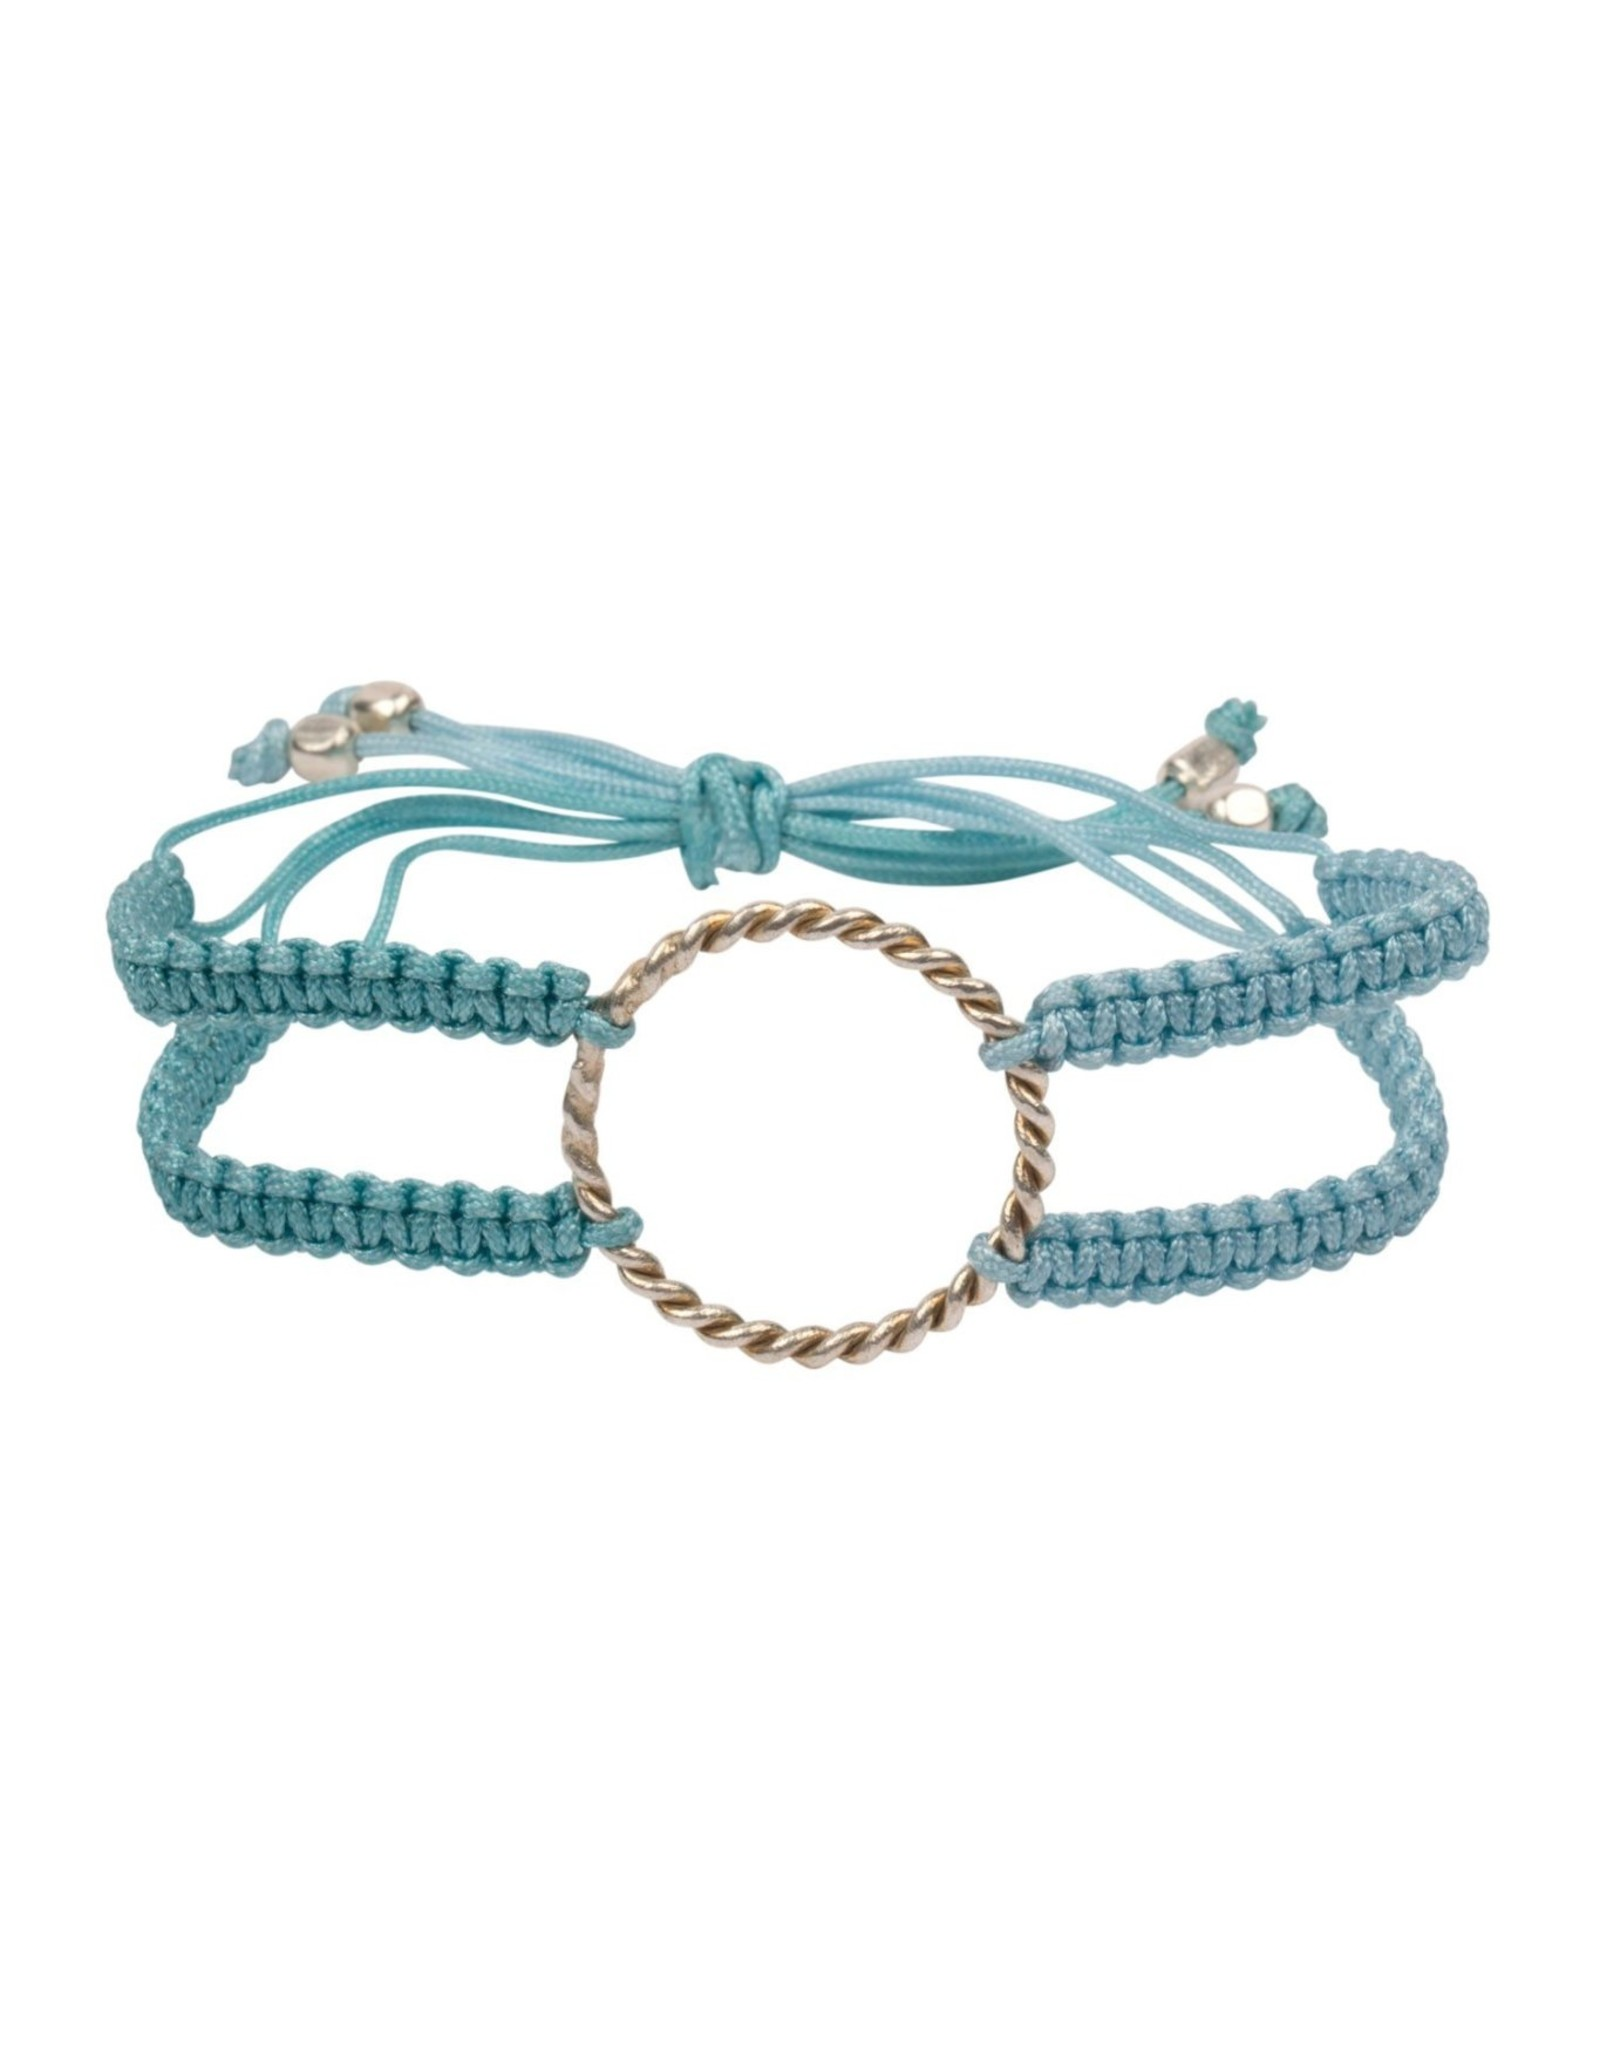 Macrame Bracelet with Ring Friends Forever